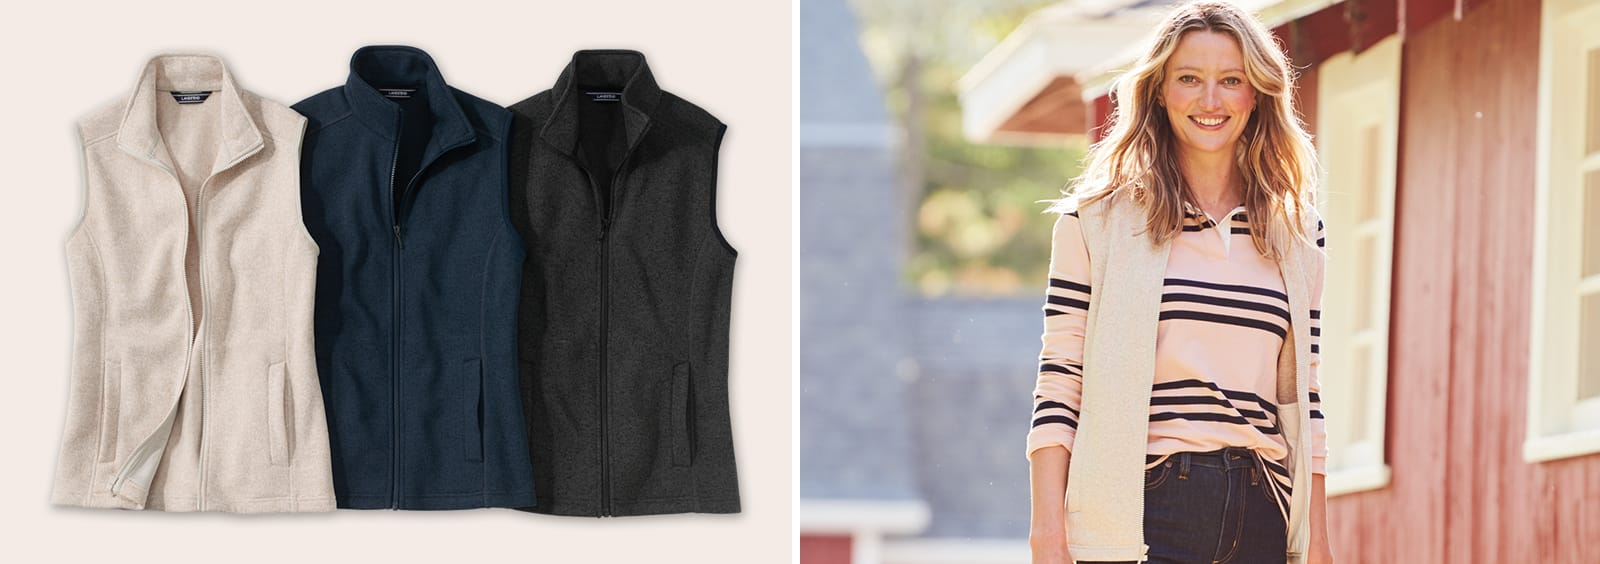 When and How to Wear a Fleece Vest